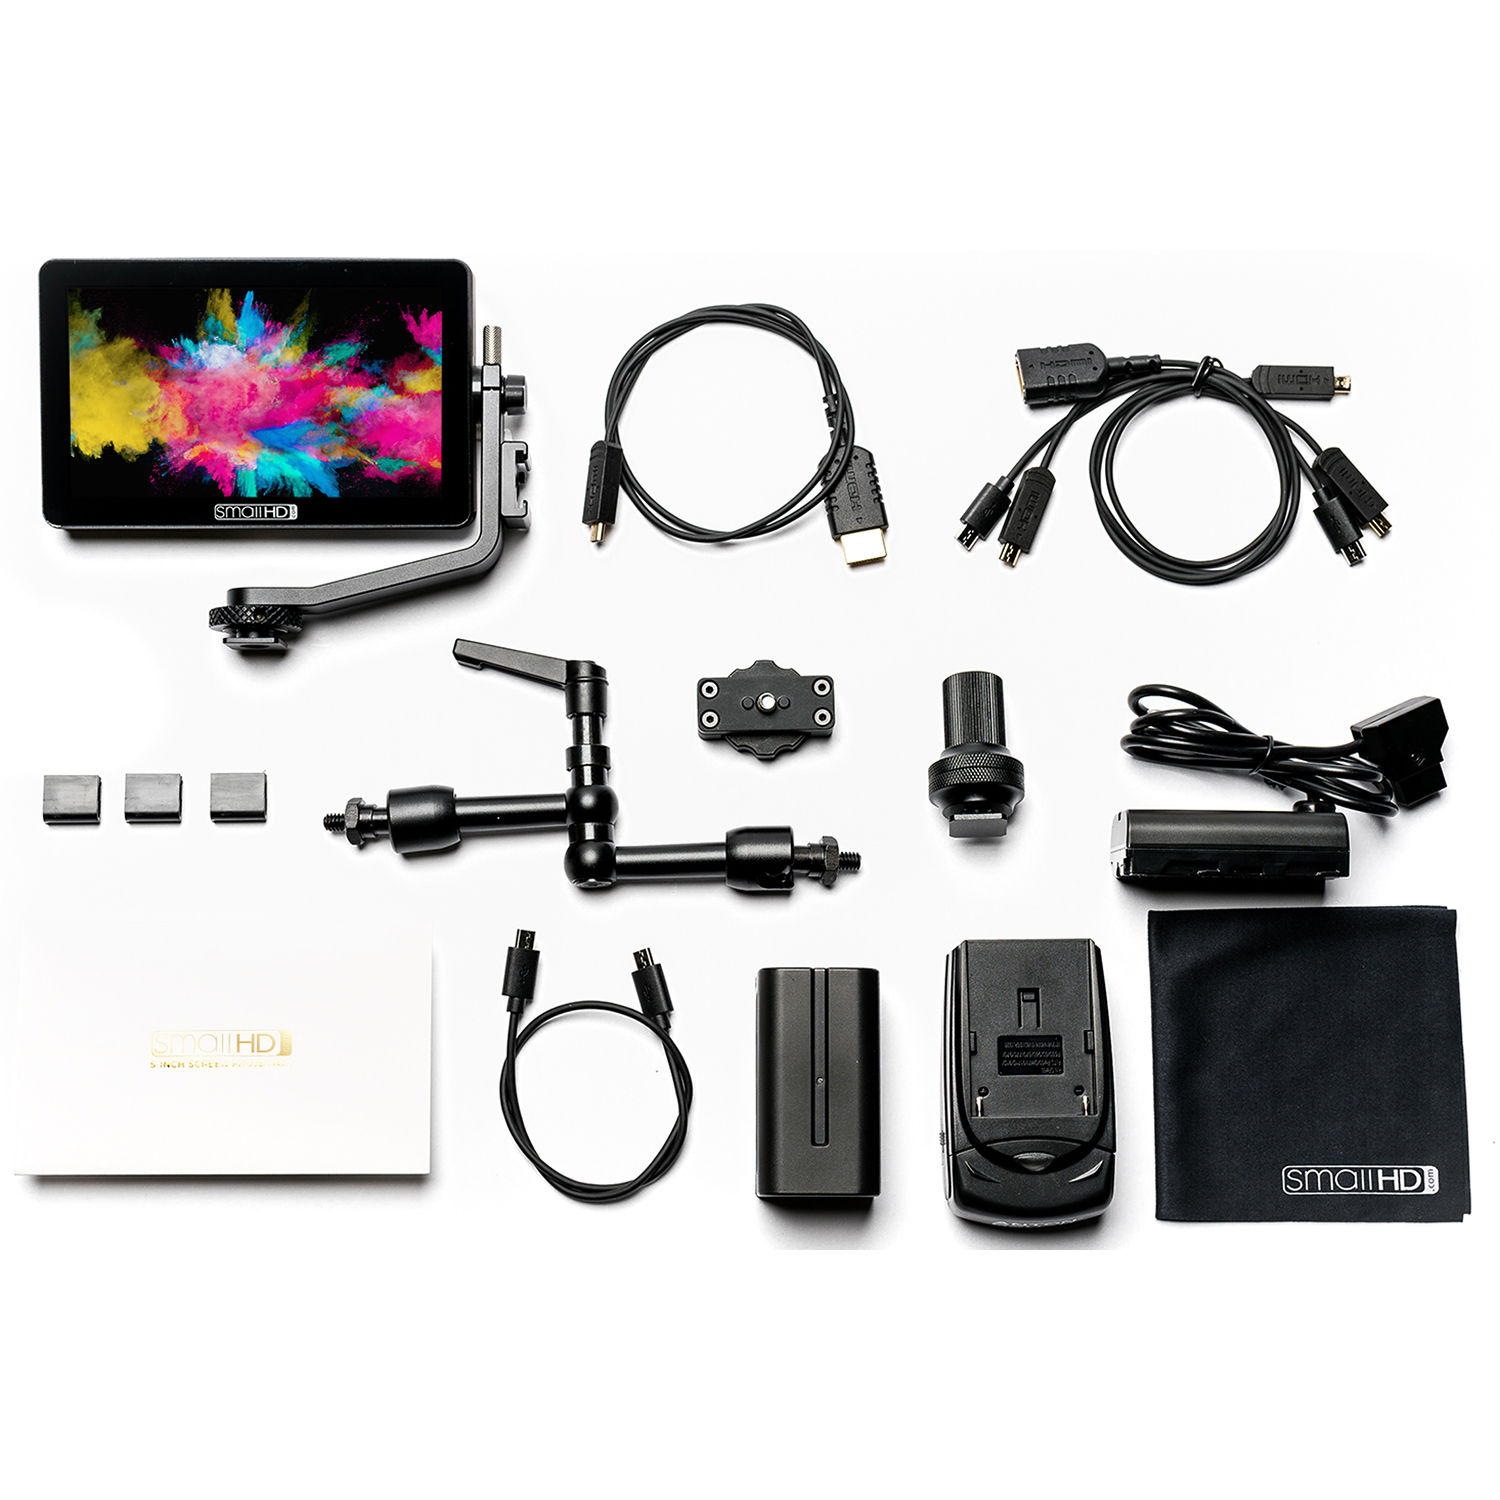 smallhd focus oled hdmi monitor cine kit mon focus oled. Black Bedroom Furniture Sets. Home Design Ideas